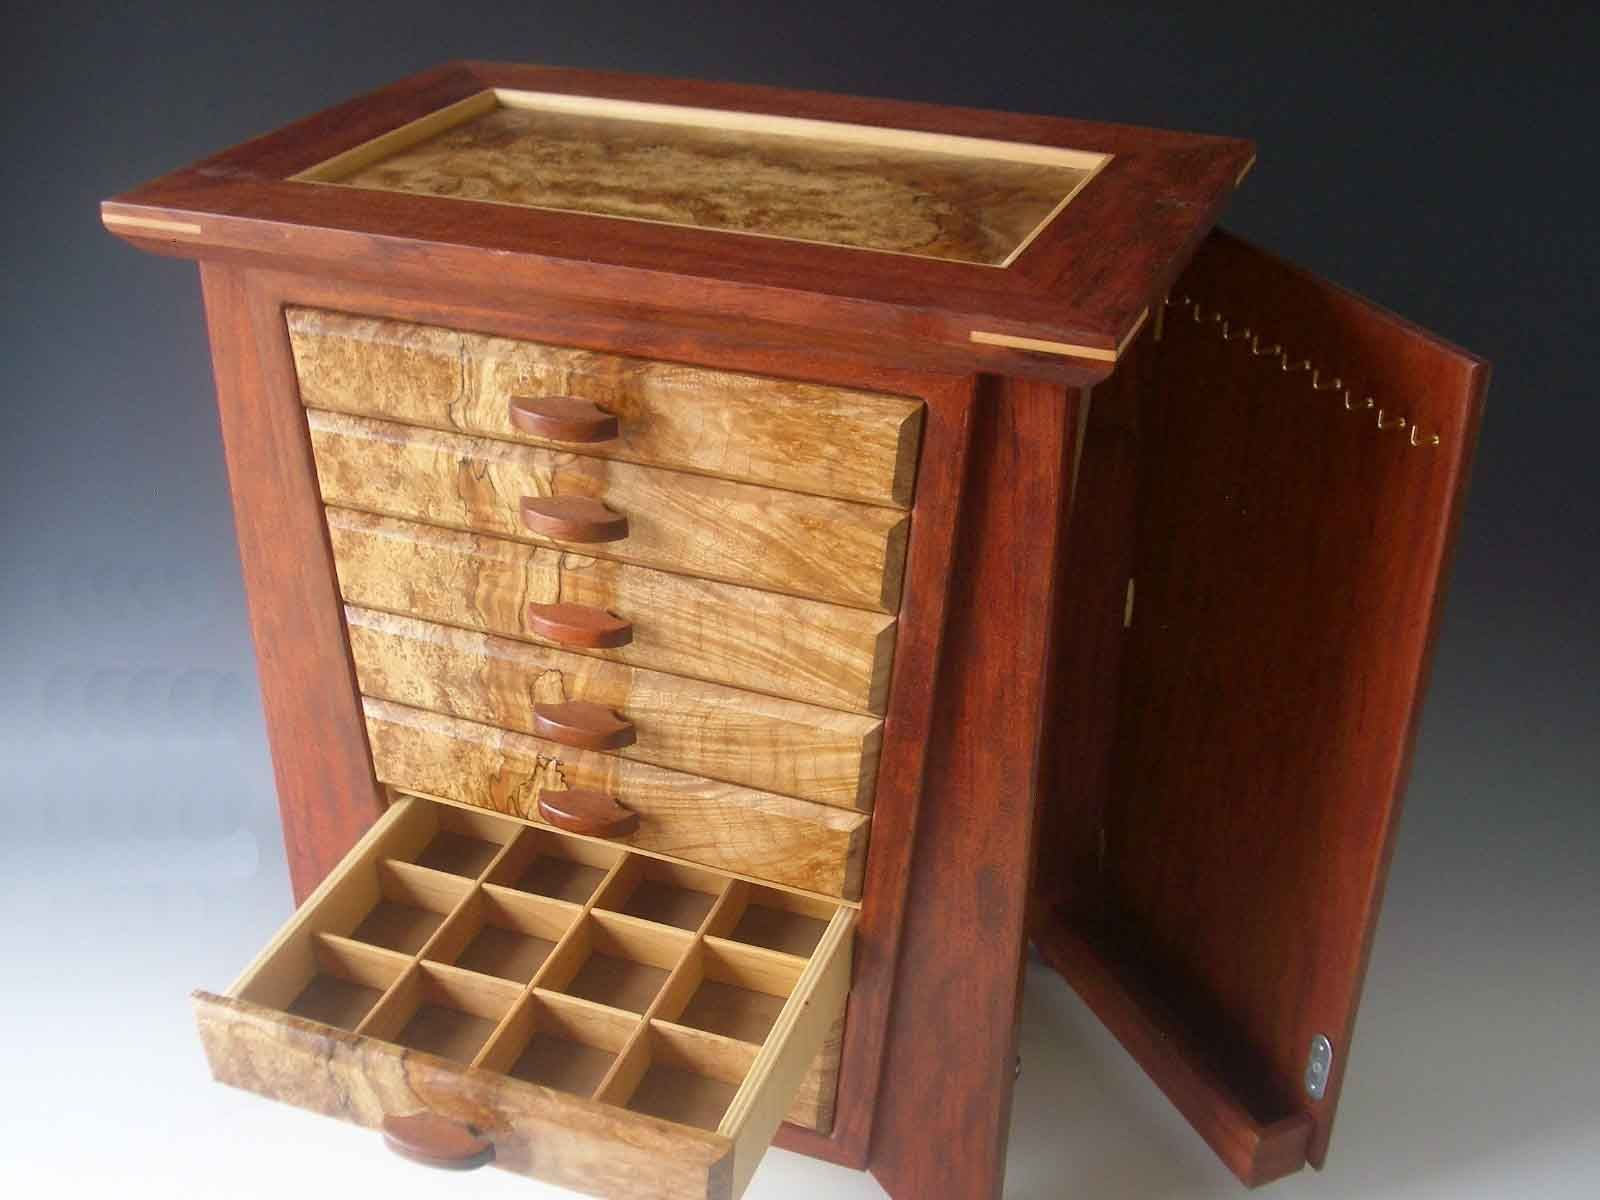 1000 Handmade exotic wood jewelry box made of bubinga wood and burl